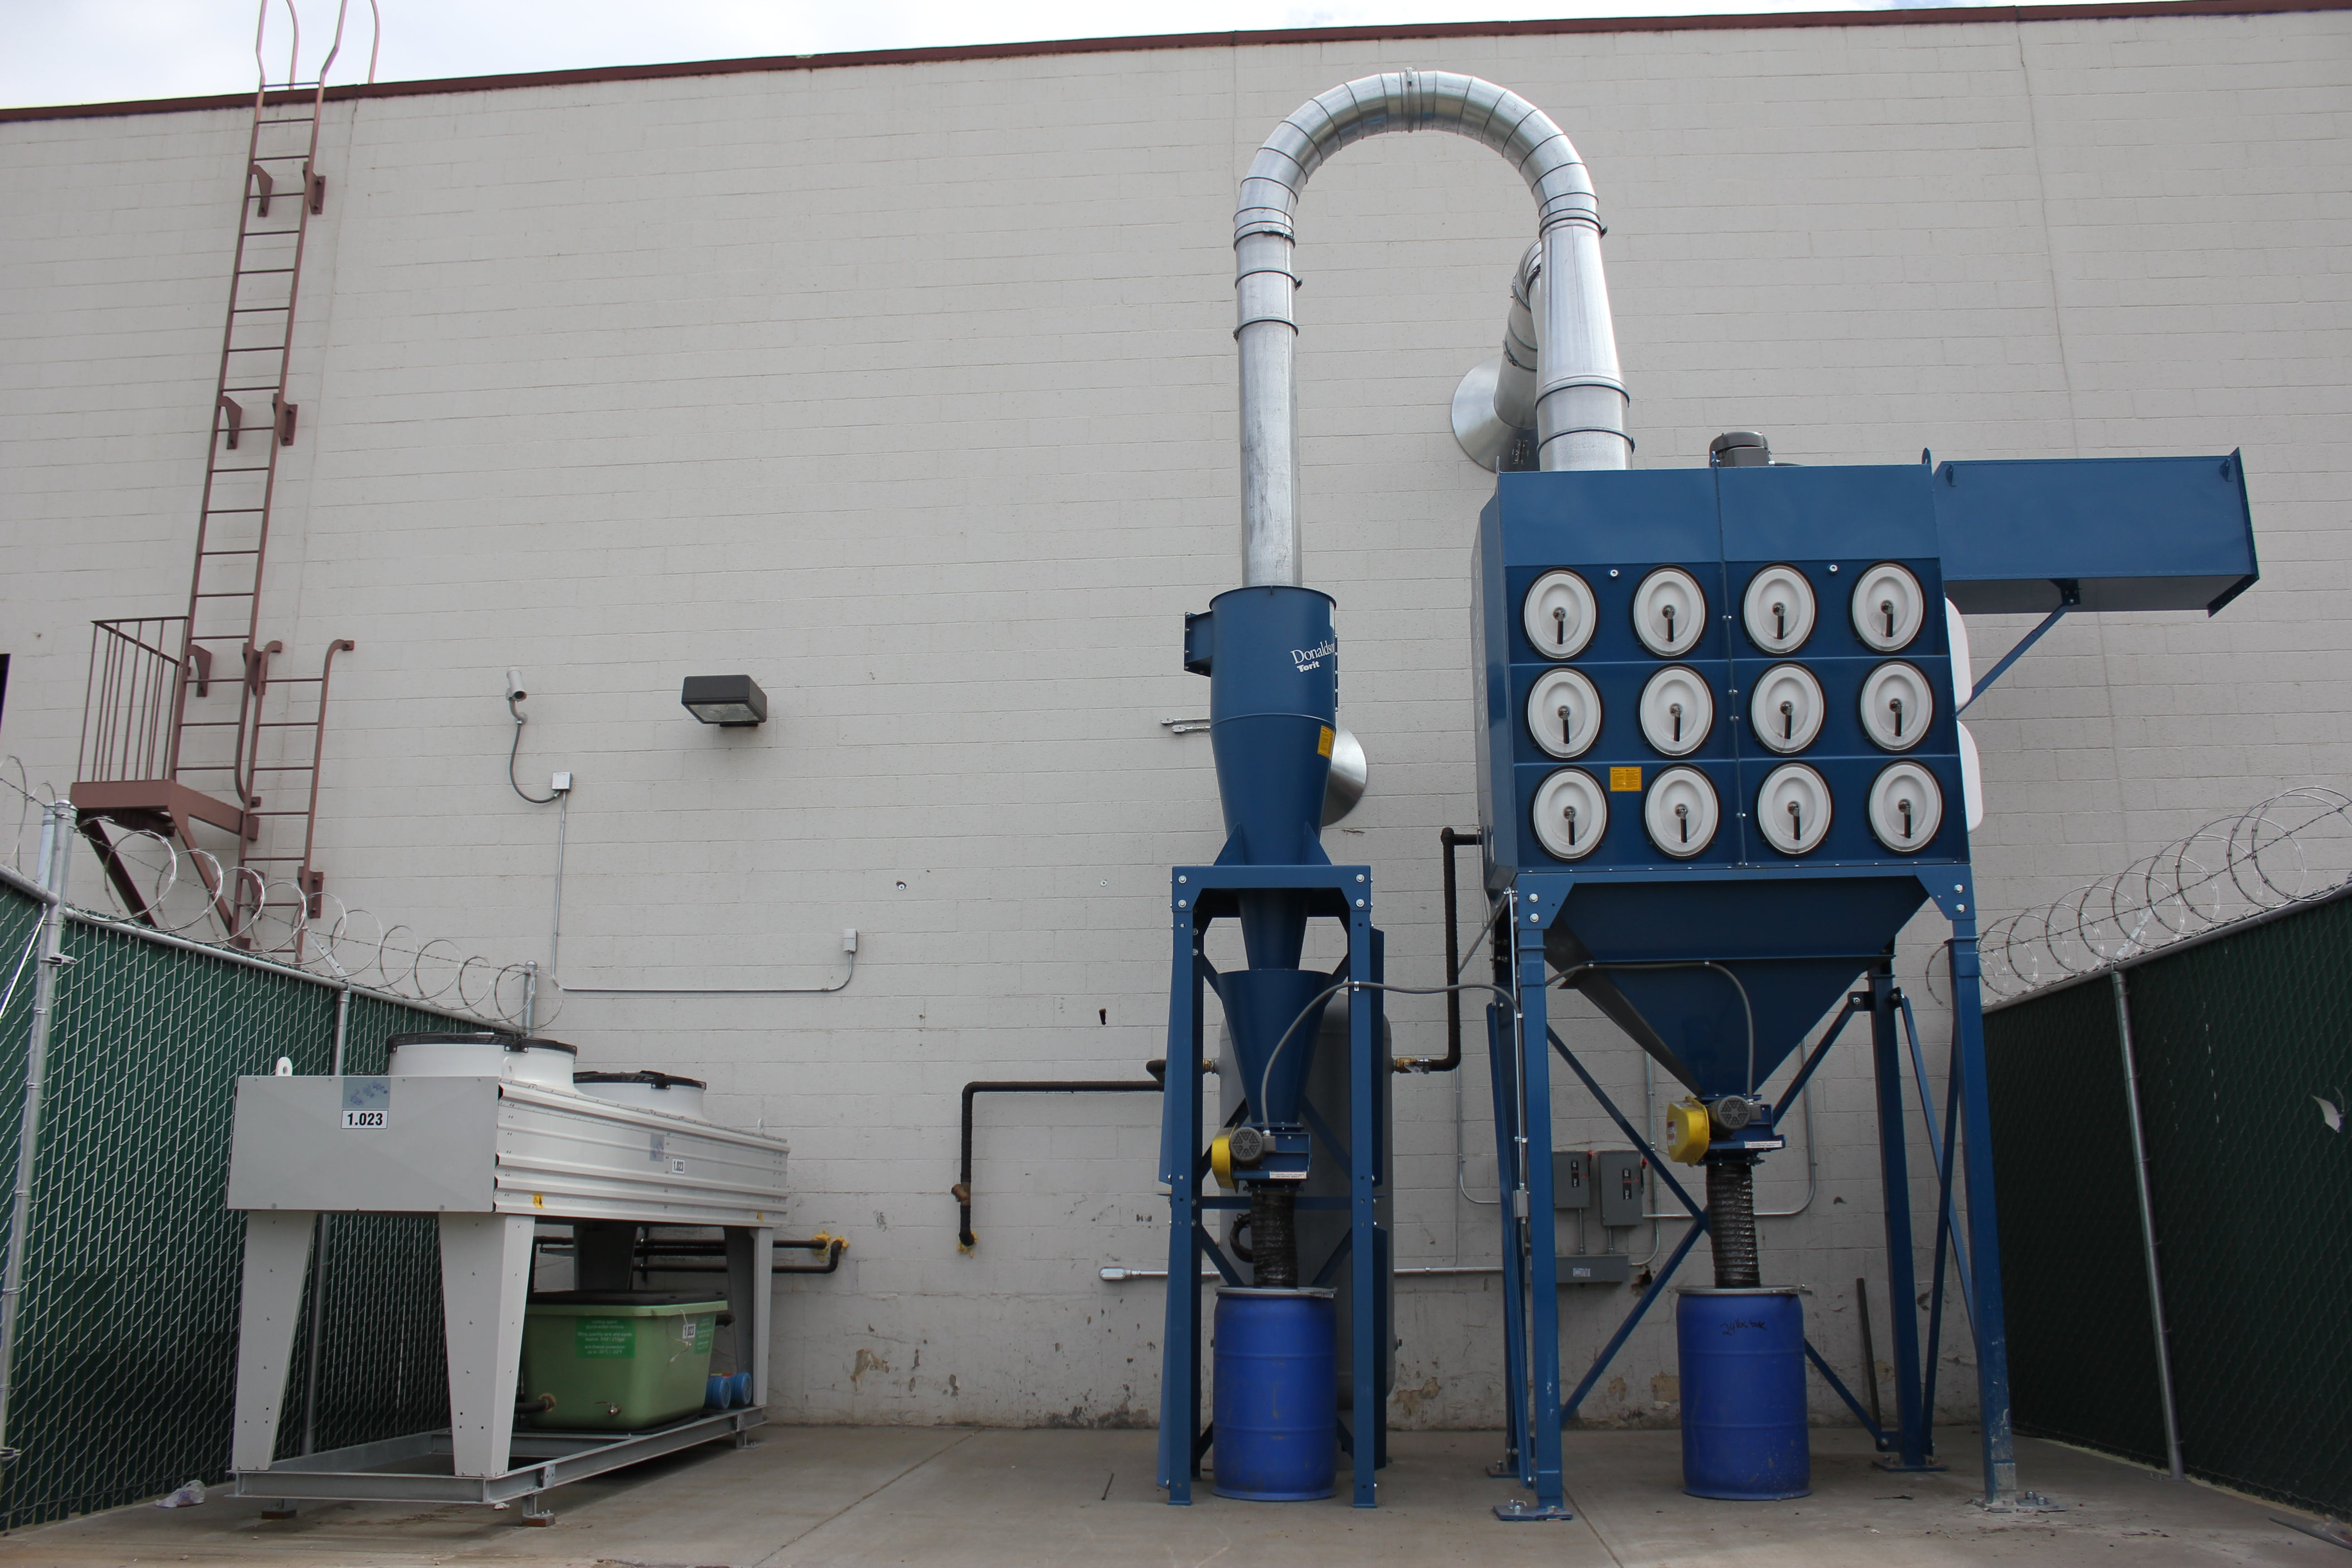 Cyclone pre-cleaner prior to dust collector.